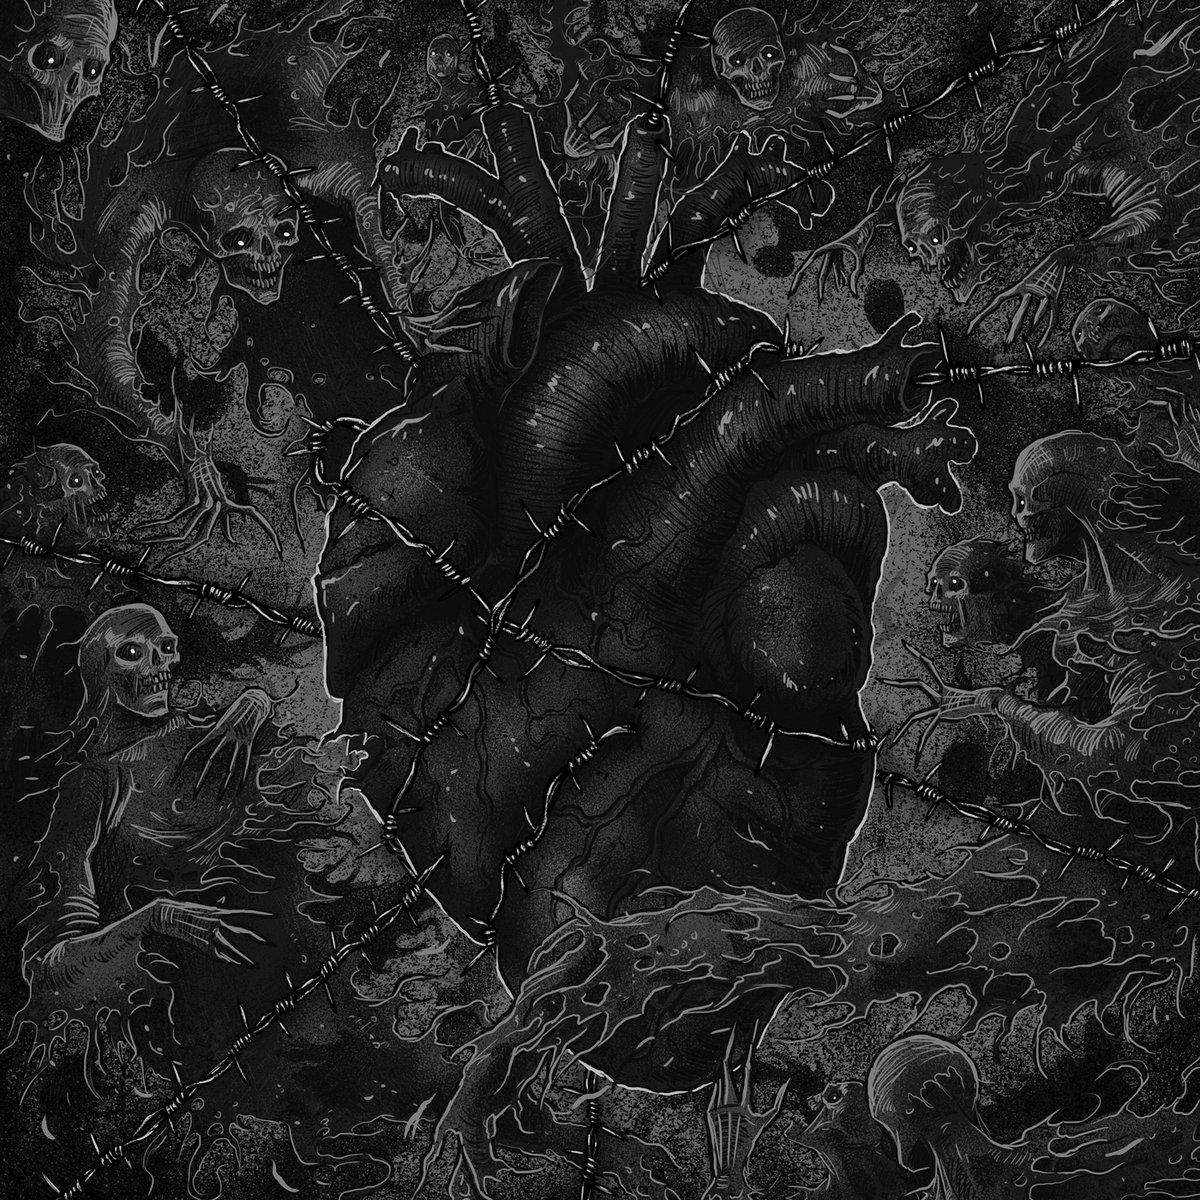 Horna / Pure - Split